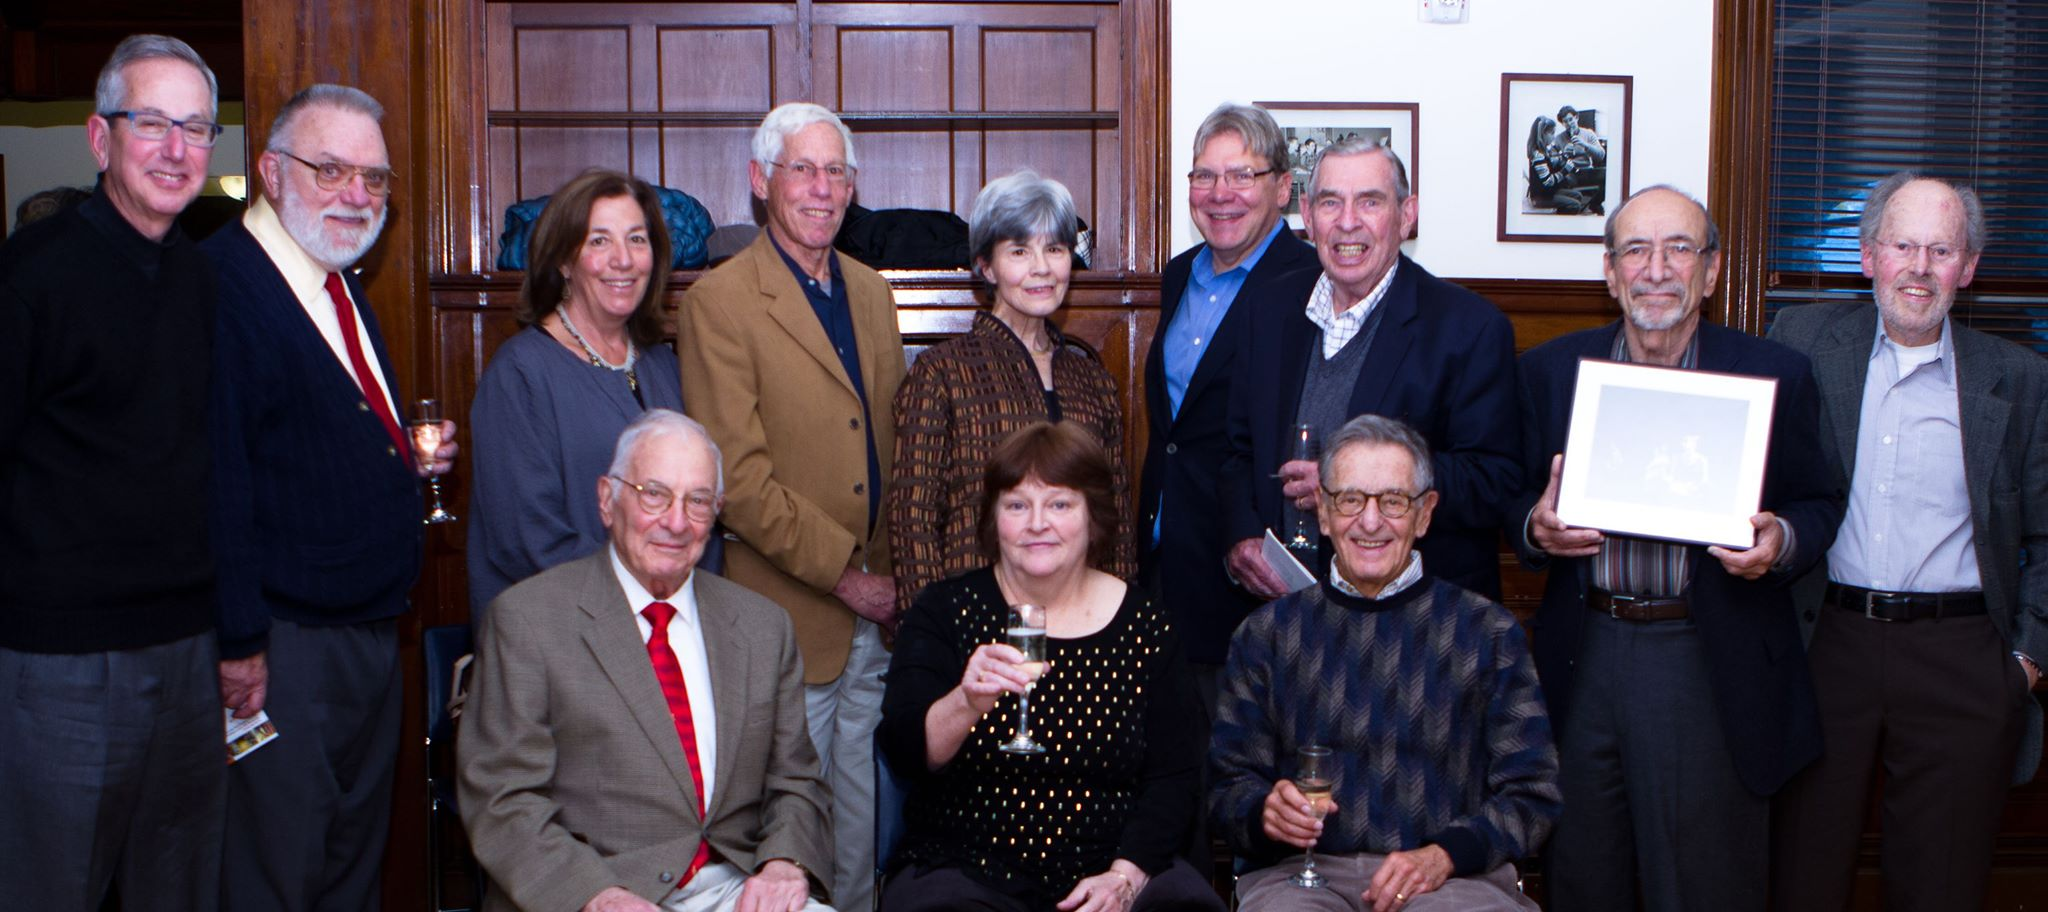 Director Paulette Bowes surrounded by the Board Presidents who served over her three decade tenure.